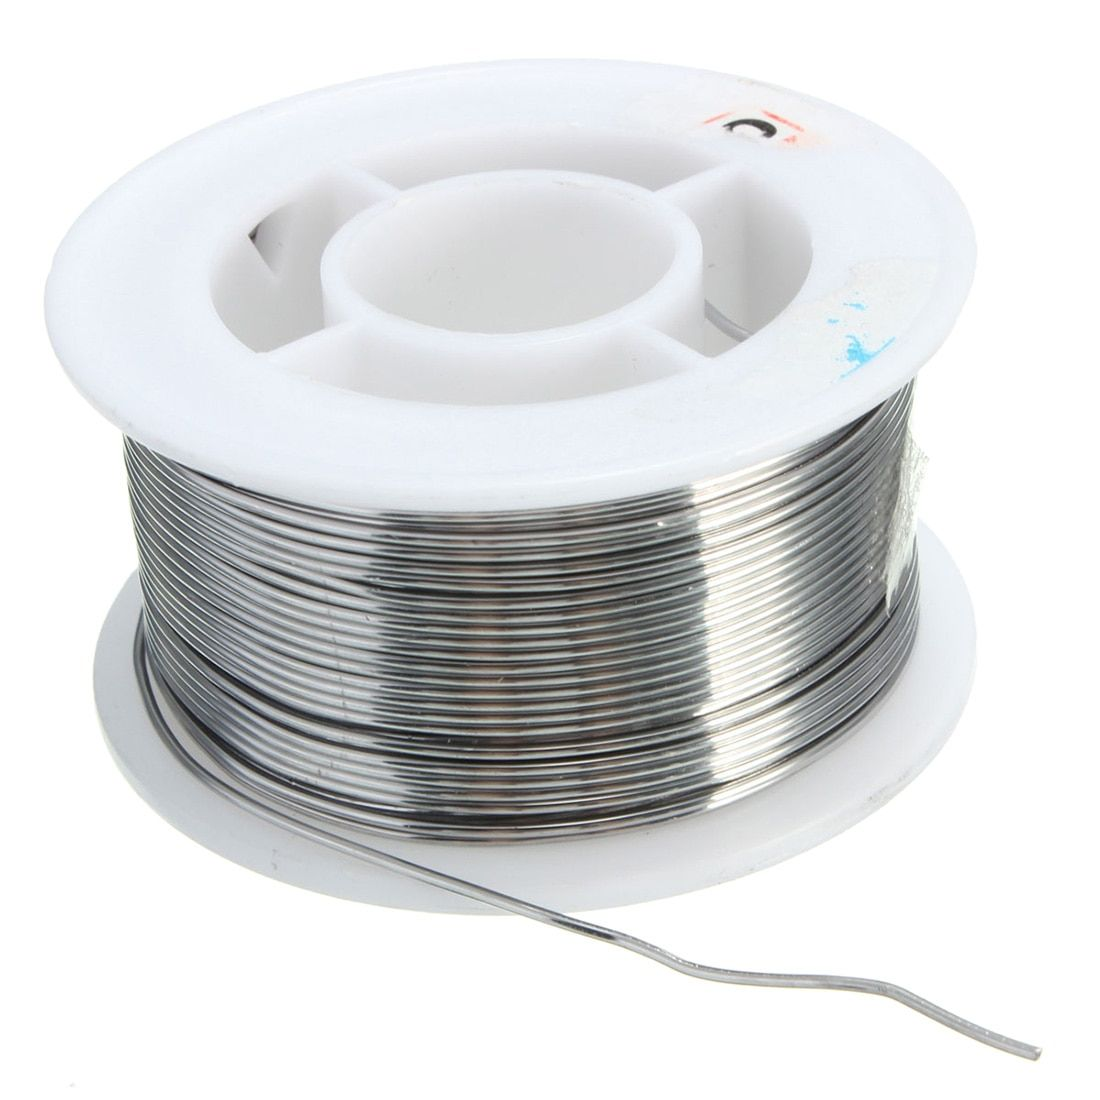 Promotion! 100g 0.8mm 60/40 Tin lead Solder Wire Rosin Core Soldering 2% Flux Reel Tube